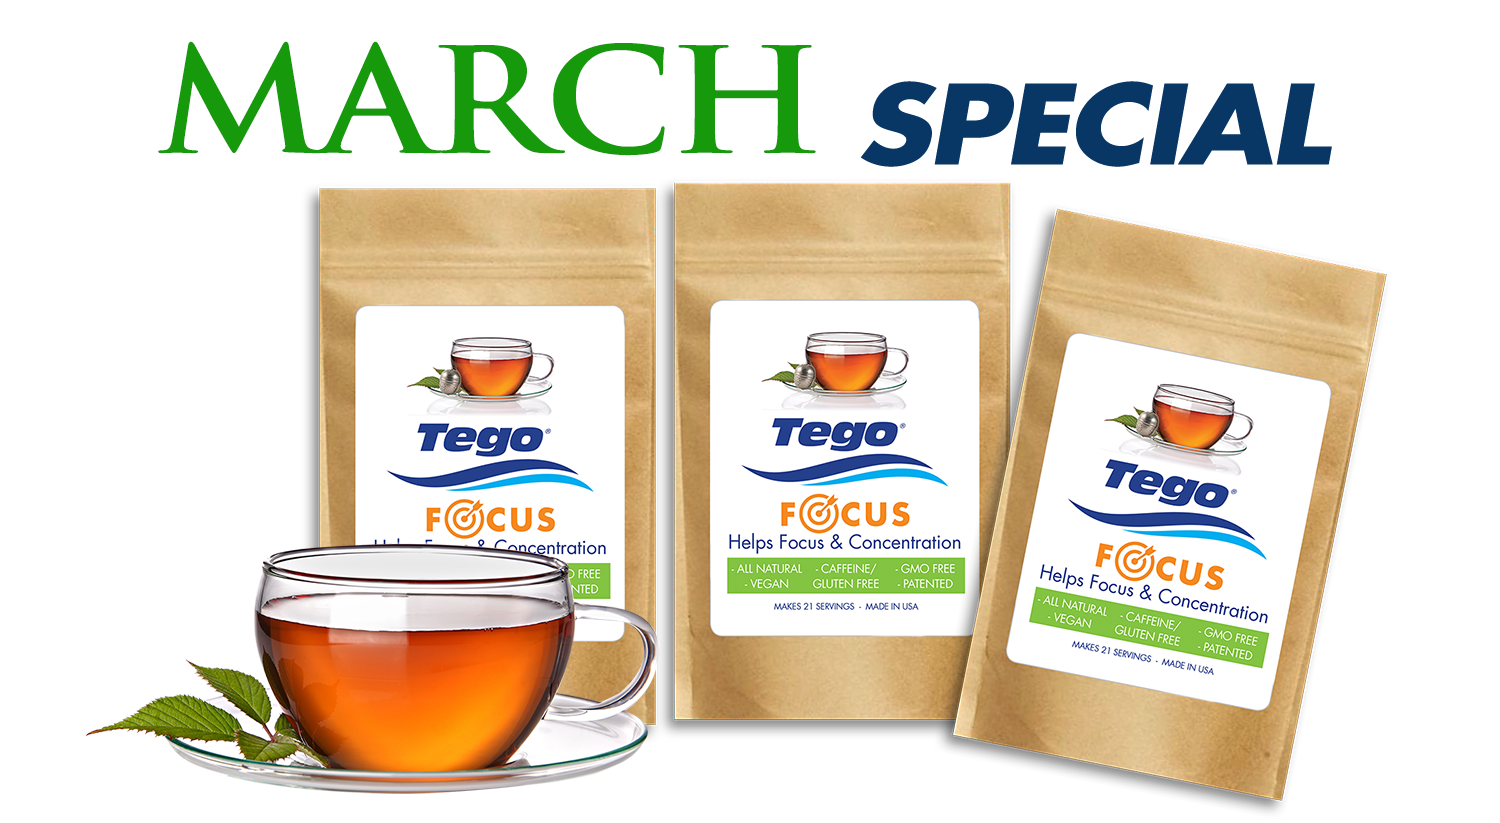 March Special - Focus - Buy 2 - Get 1 Free